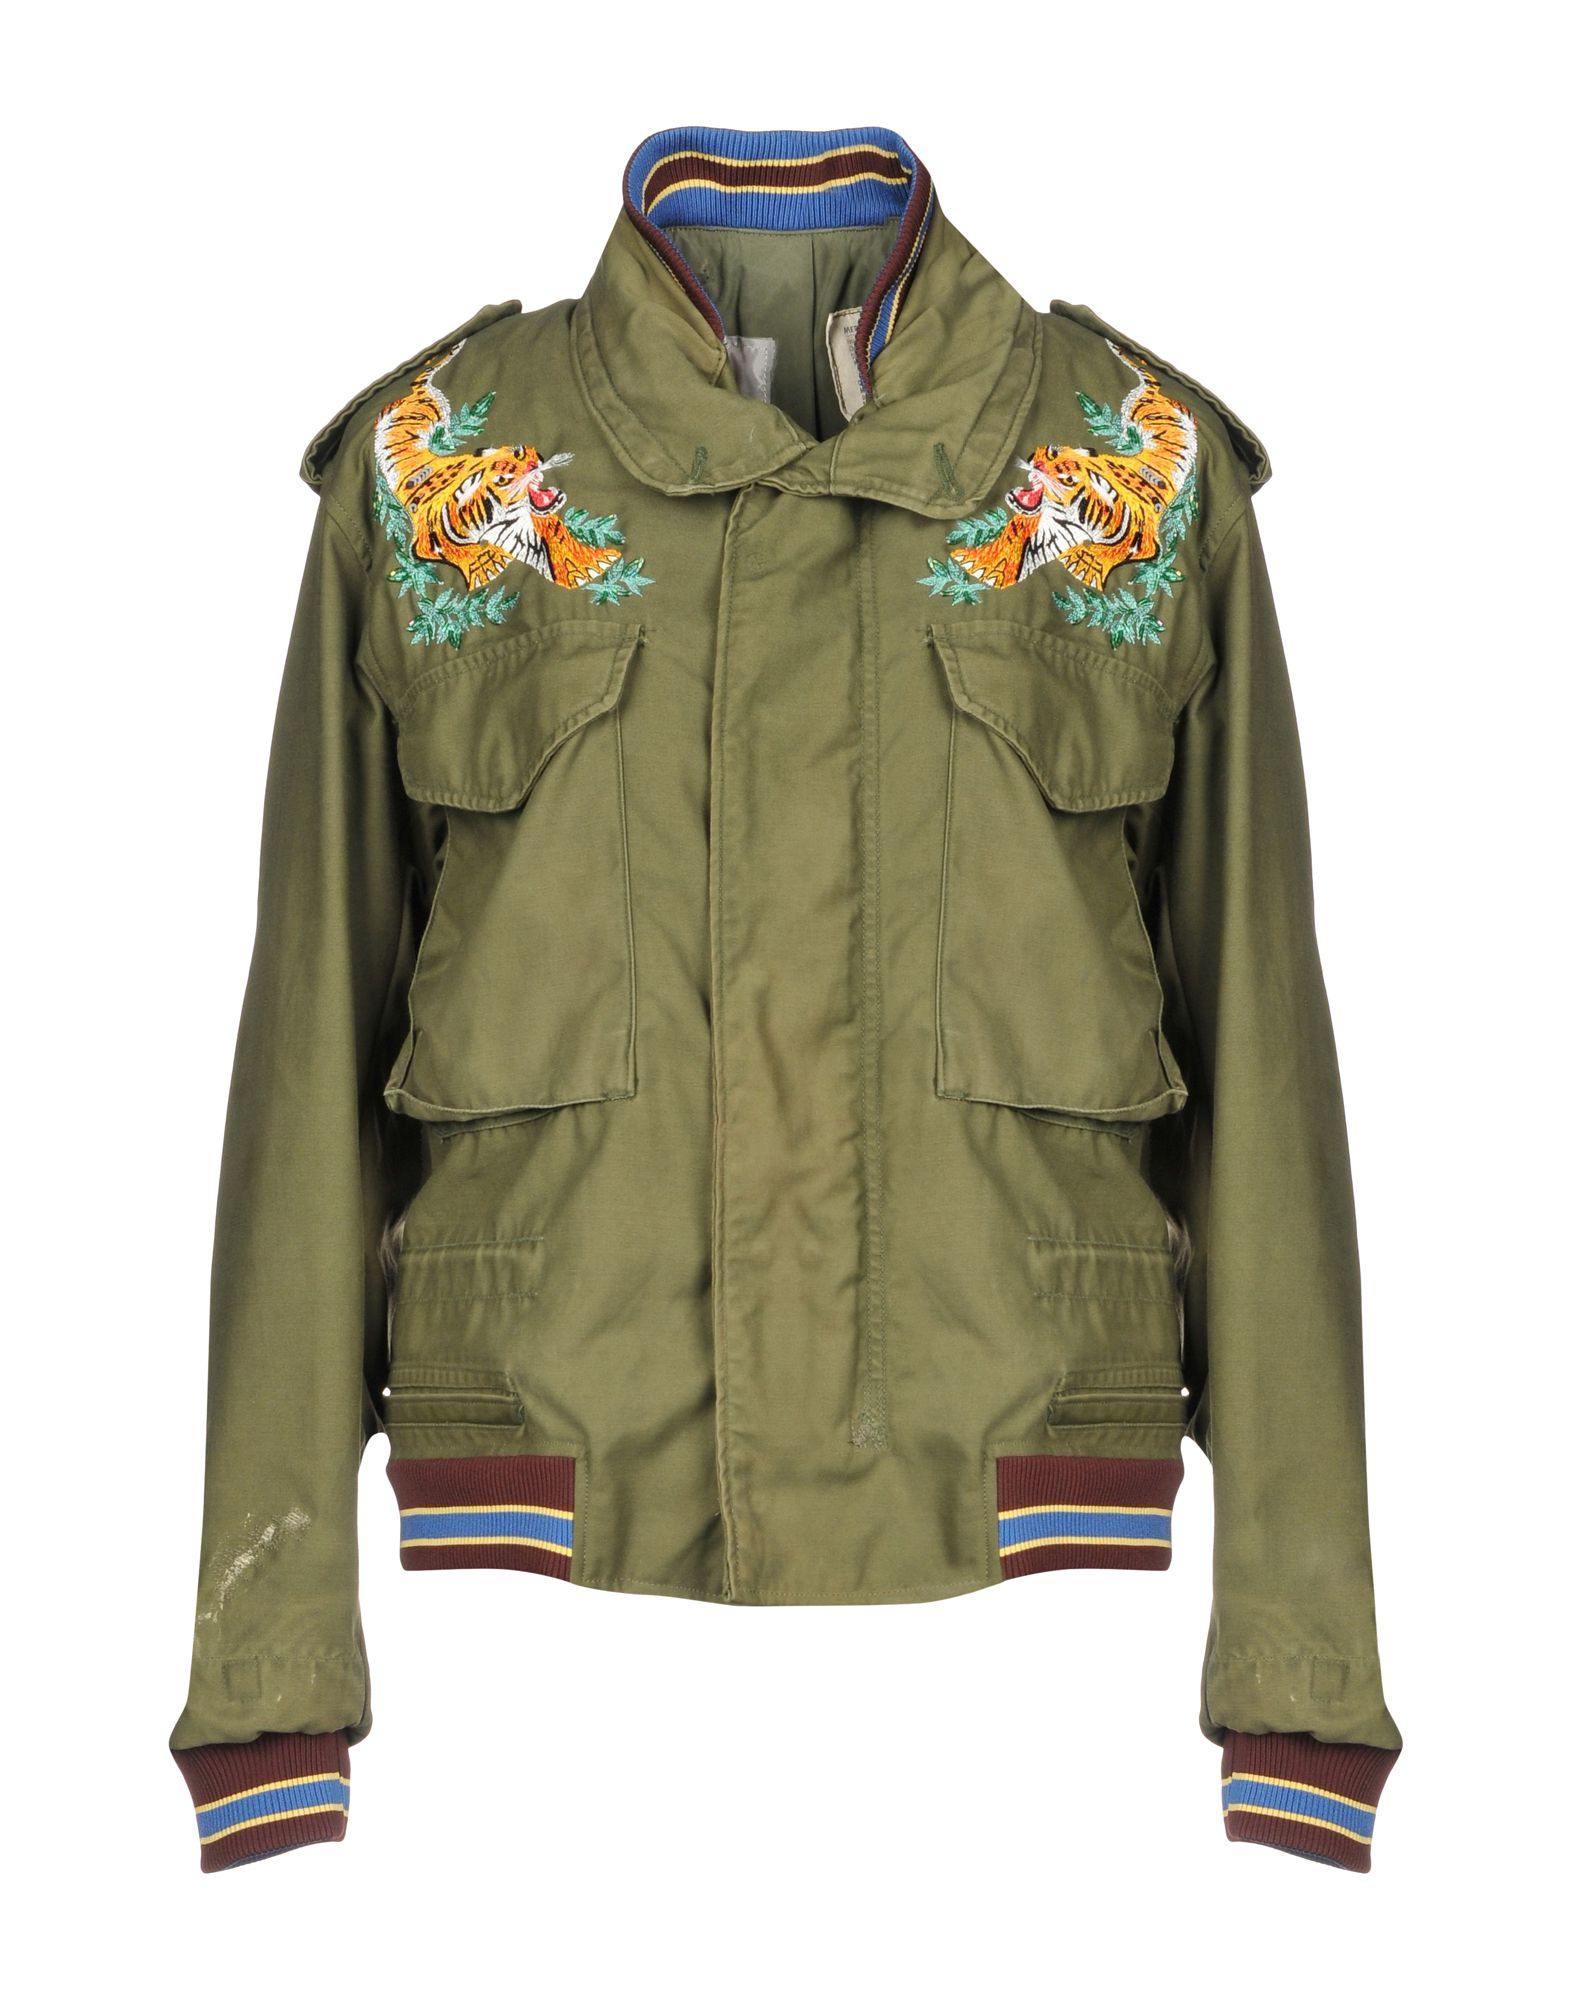 AS65 Bomber in Military Green